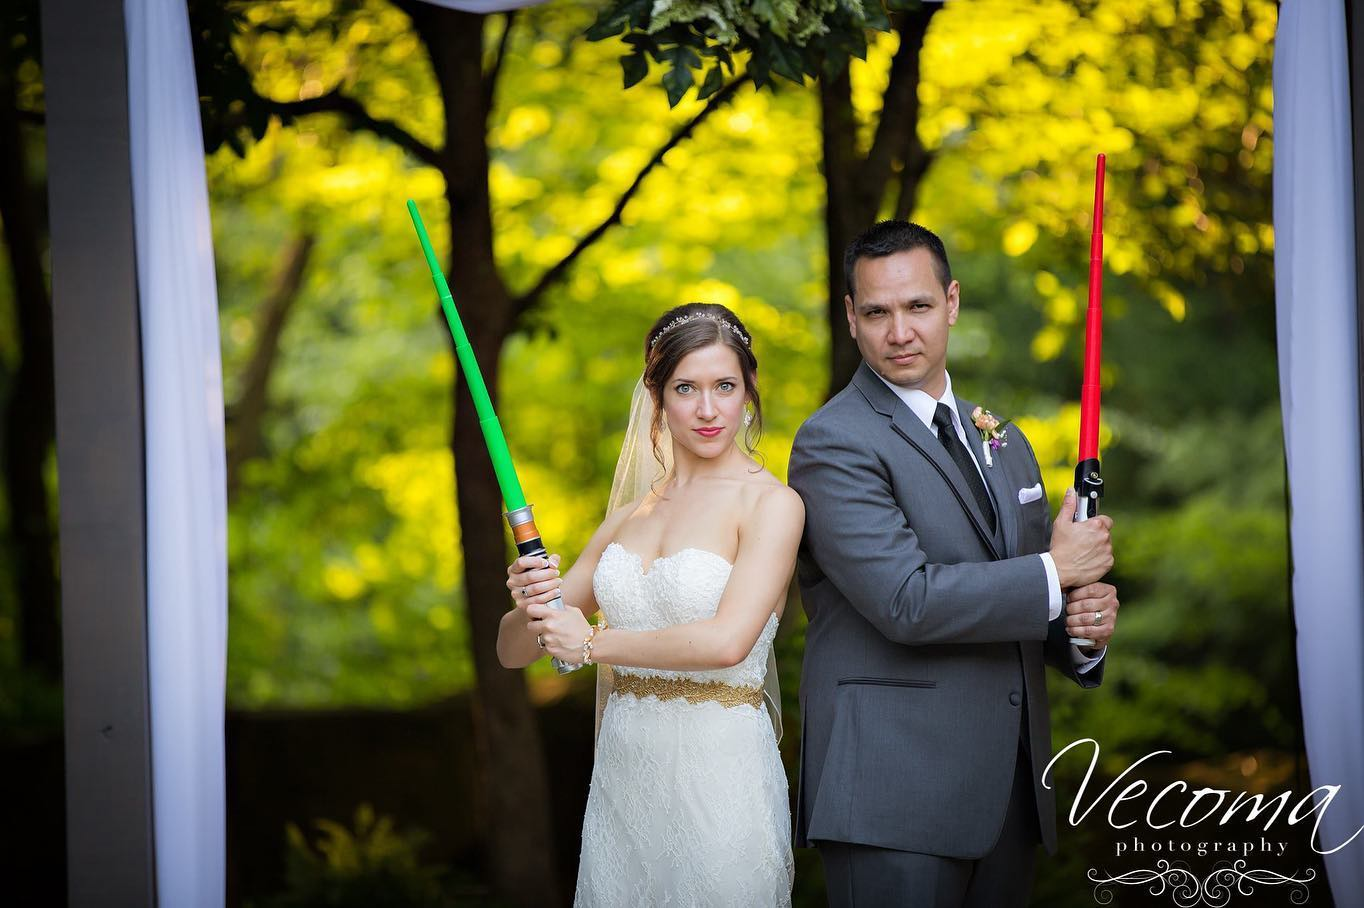 May the 4th Be With You: Star Wars Themed Wedding at Vecoma